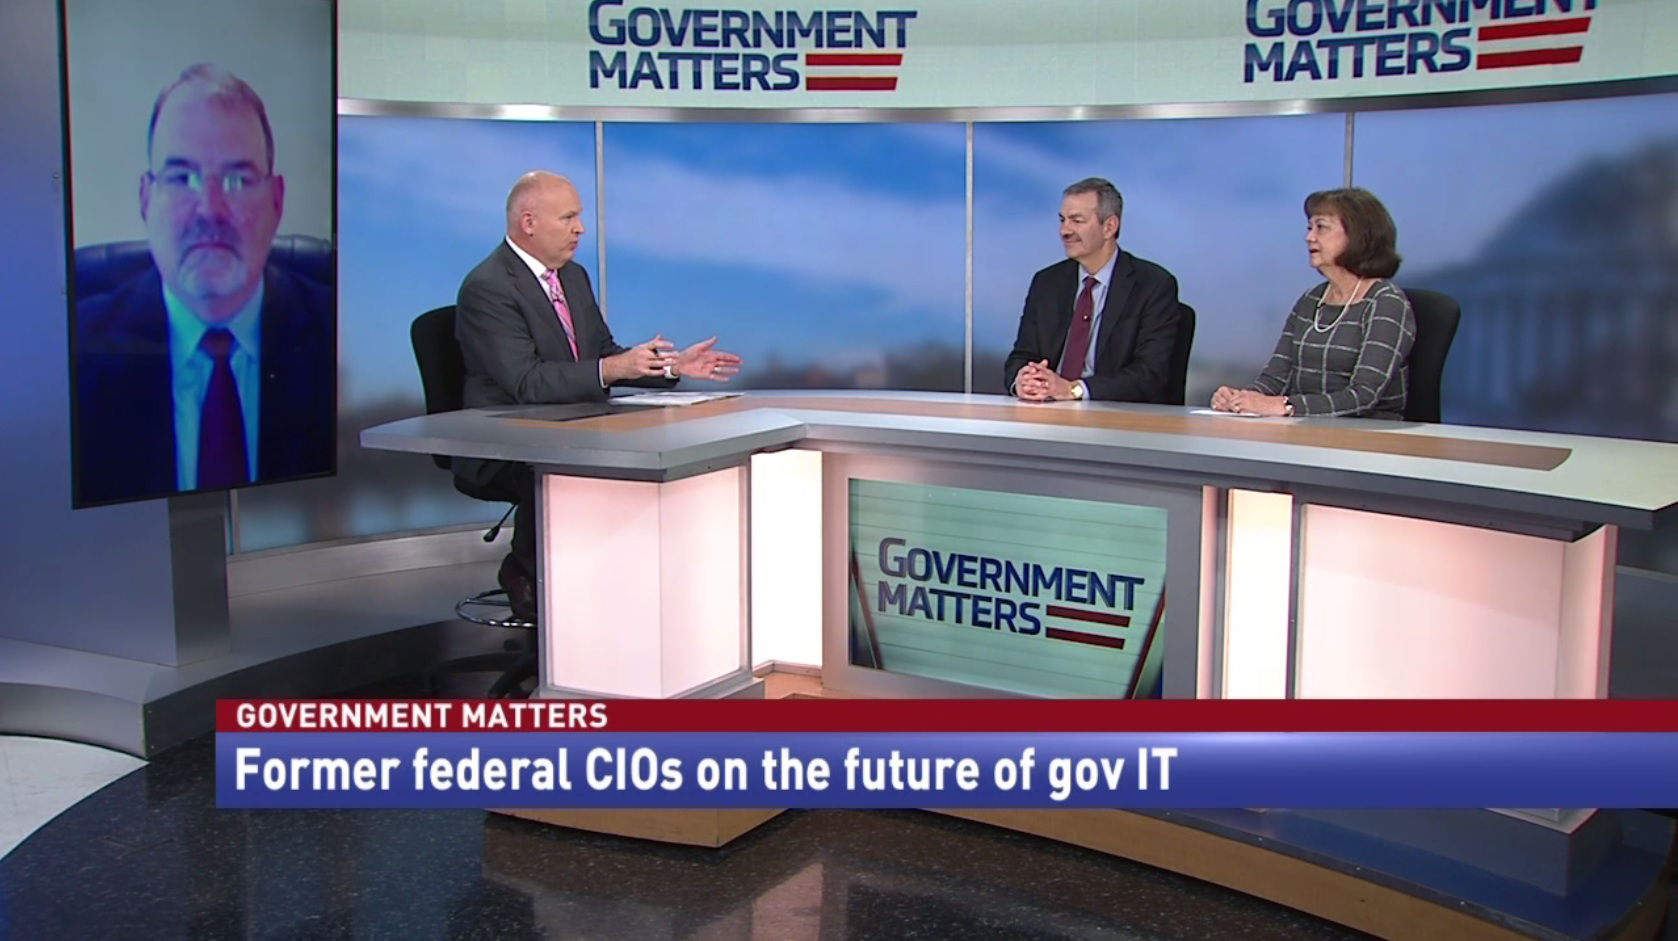 Former federal CIOs on the future of government IT